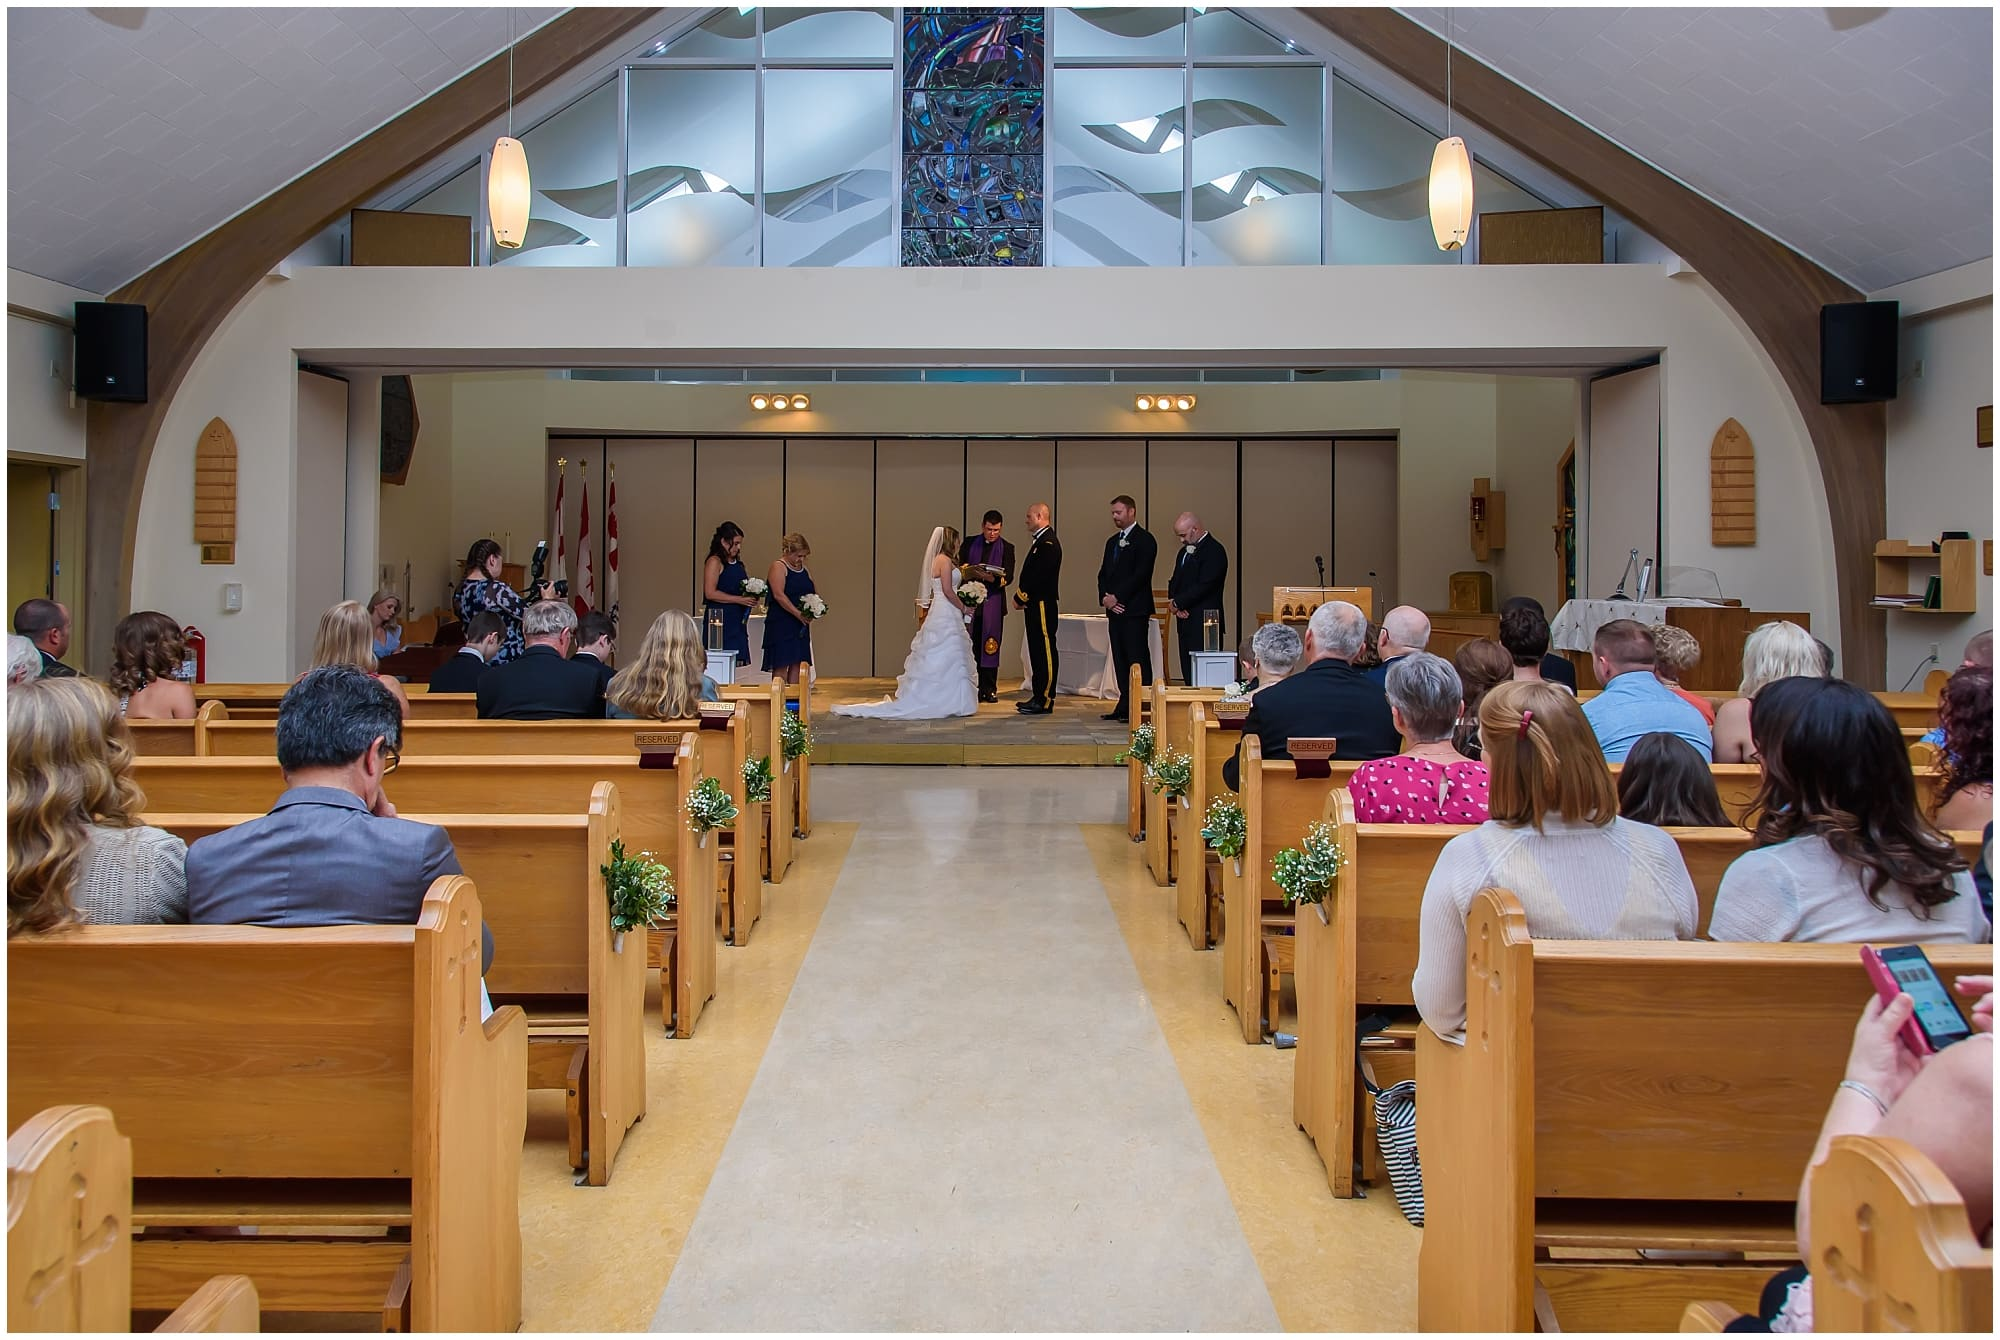 A wedding ceremony at St Brendan's Chapel by Juno Tower in Halifax, NS.